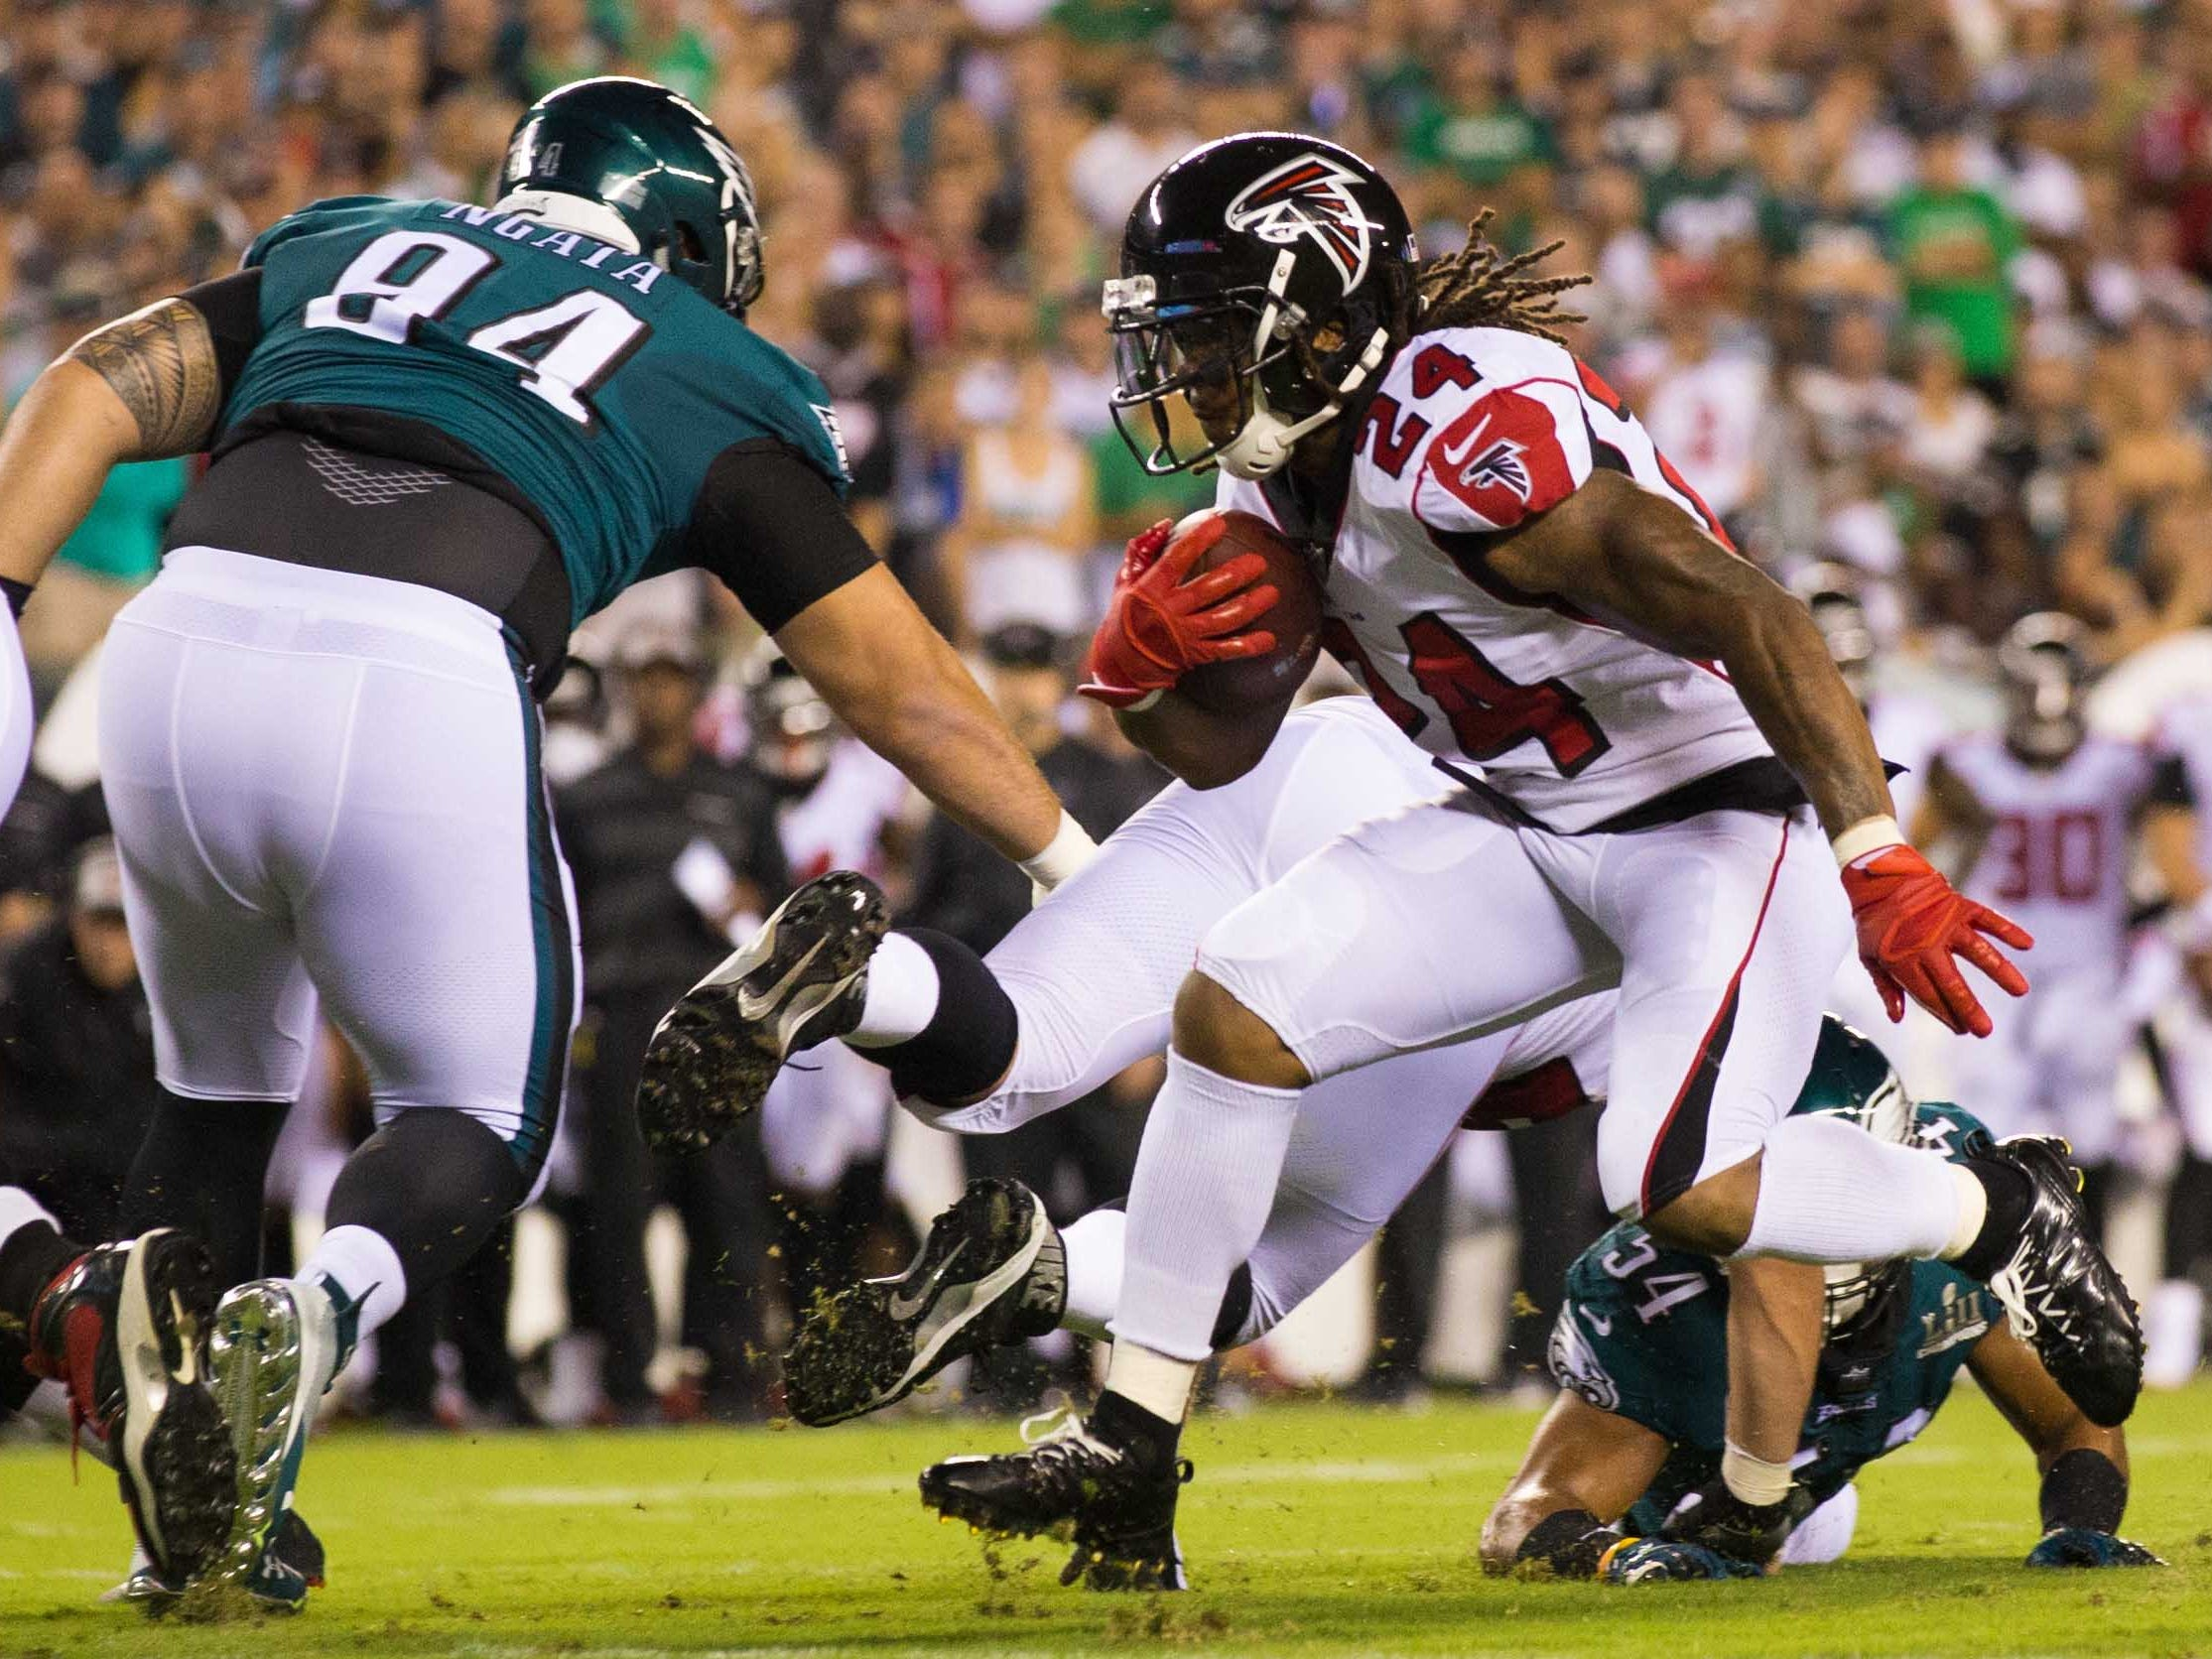 Atlanta Falcons running back Devonta Freeman runs with the ball against Philadelphia Eagles defensive tackle Haloti Ngata during the first quarter at Lincoln Financial Field.